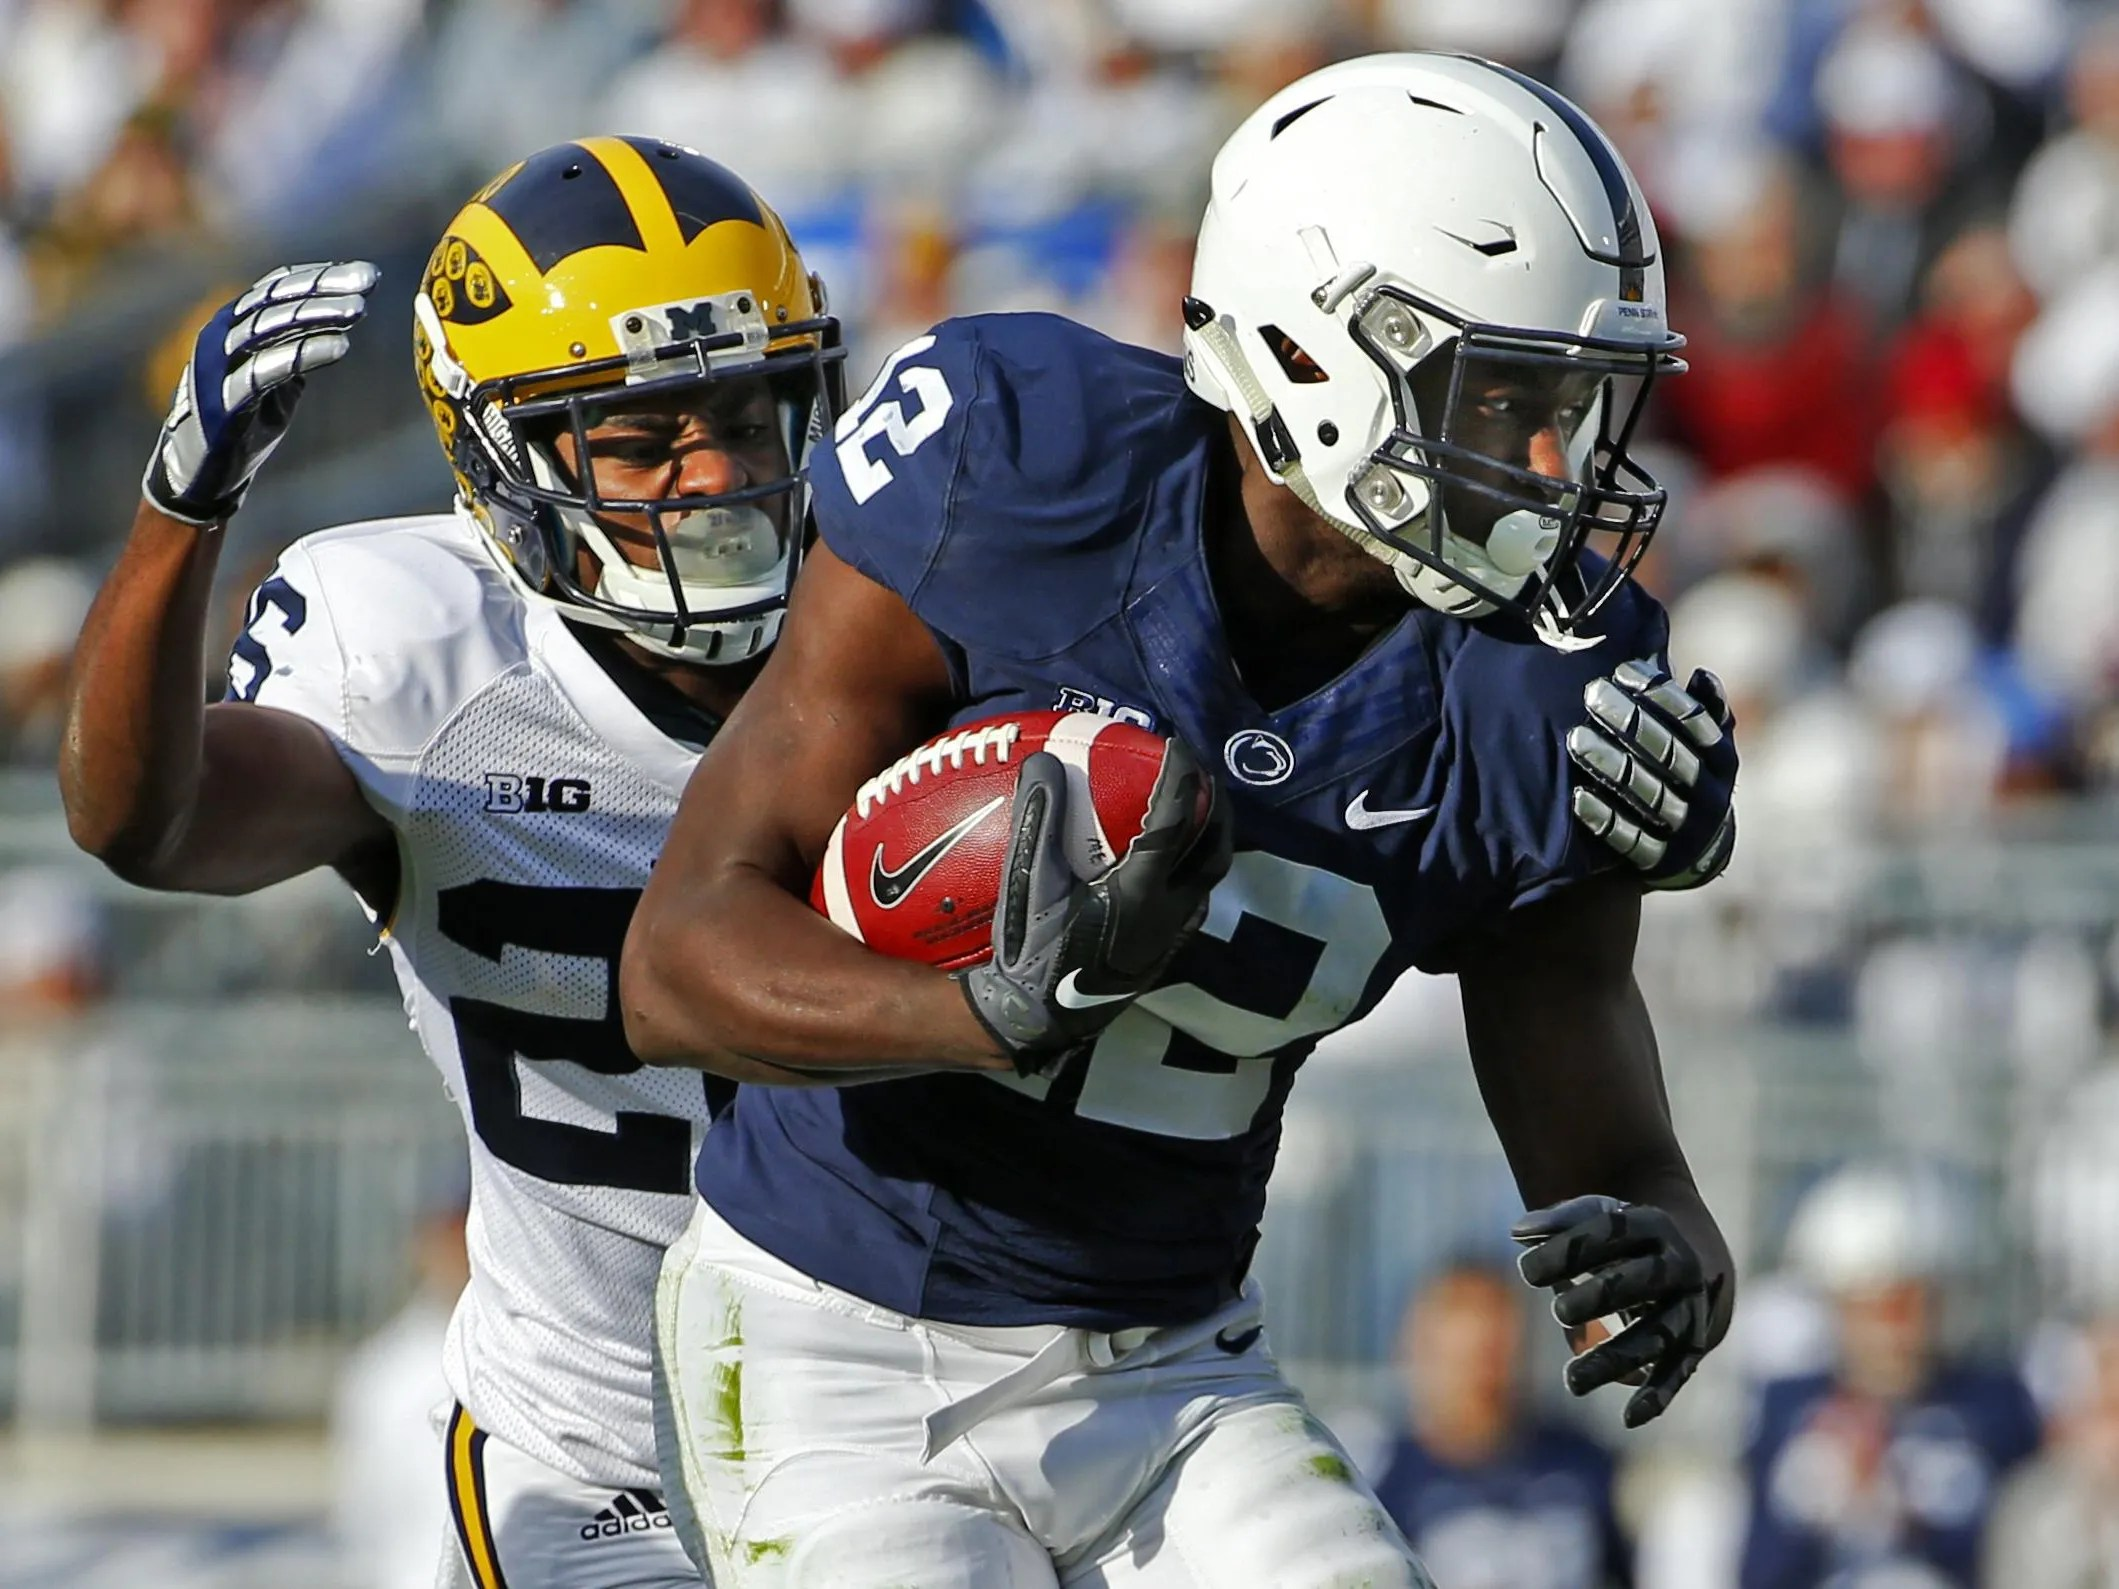 Ex Middletown Wide Receiver Gets Invite To Nfl Combine Usa Today